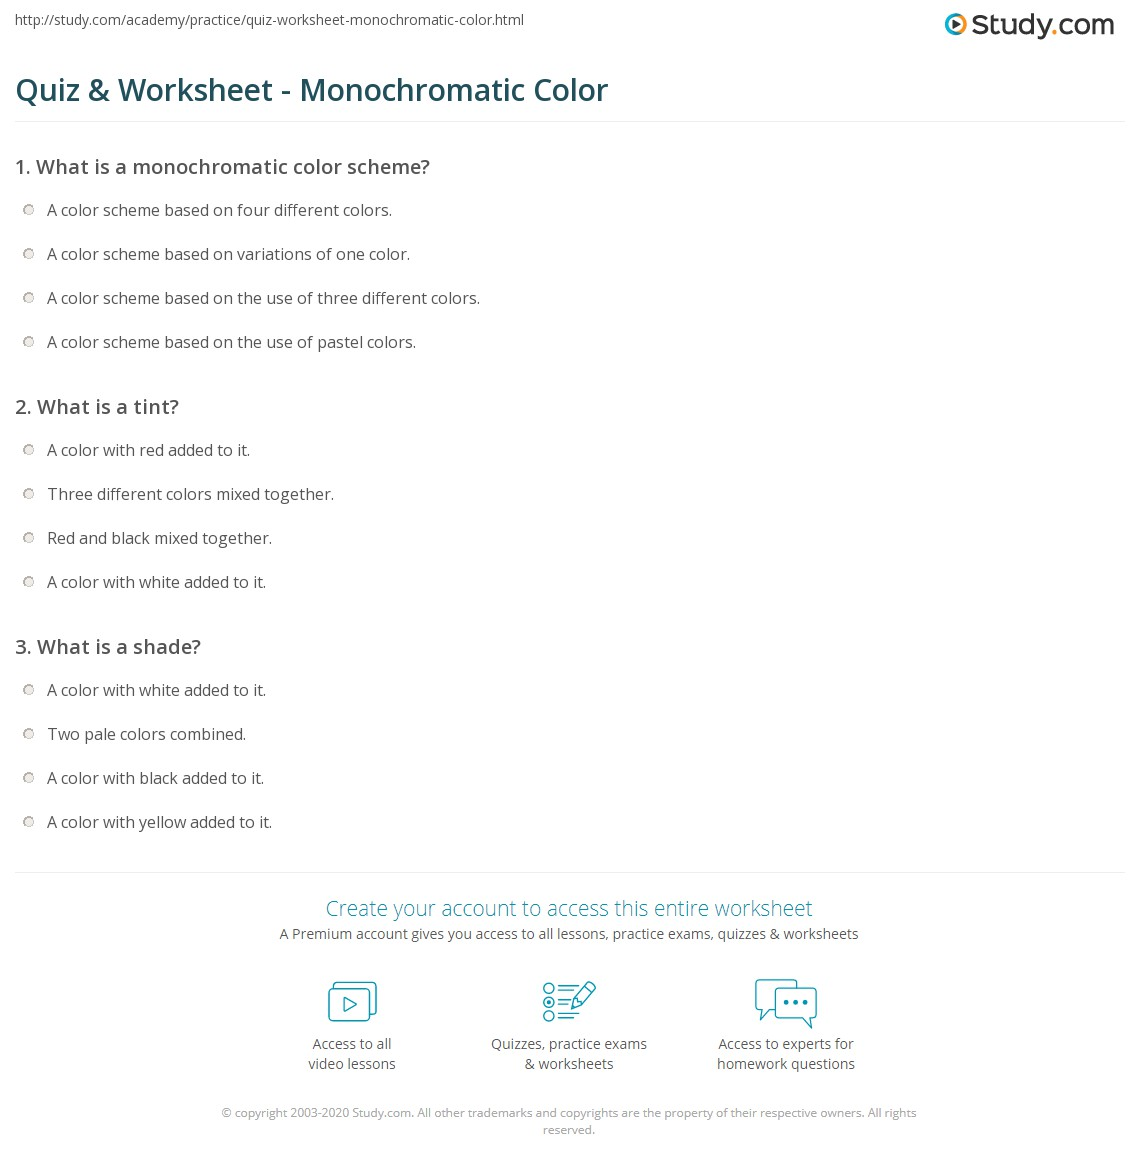 Monochromatic Color Scheme Definition quiz & worksheet - monochromatic color | study